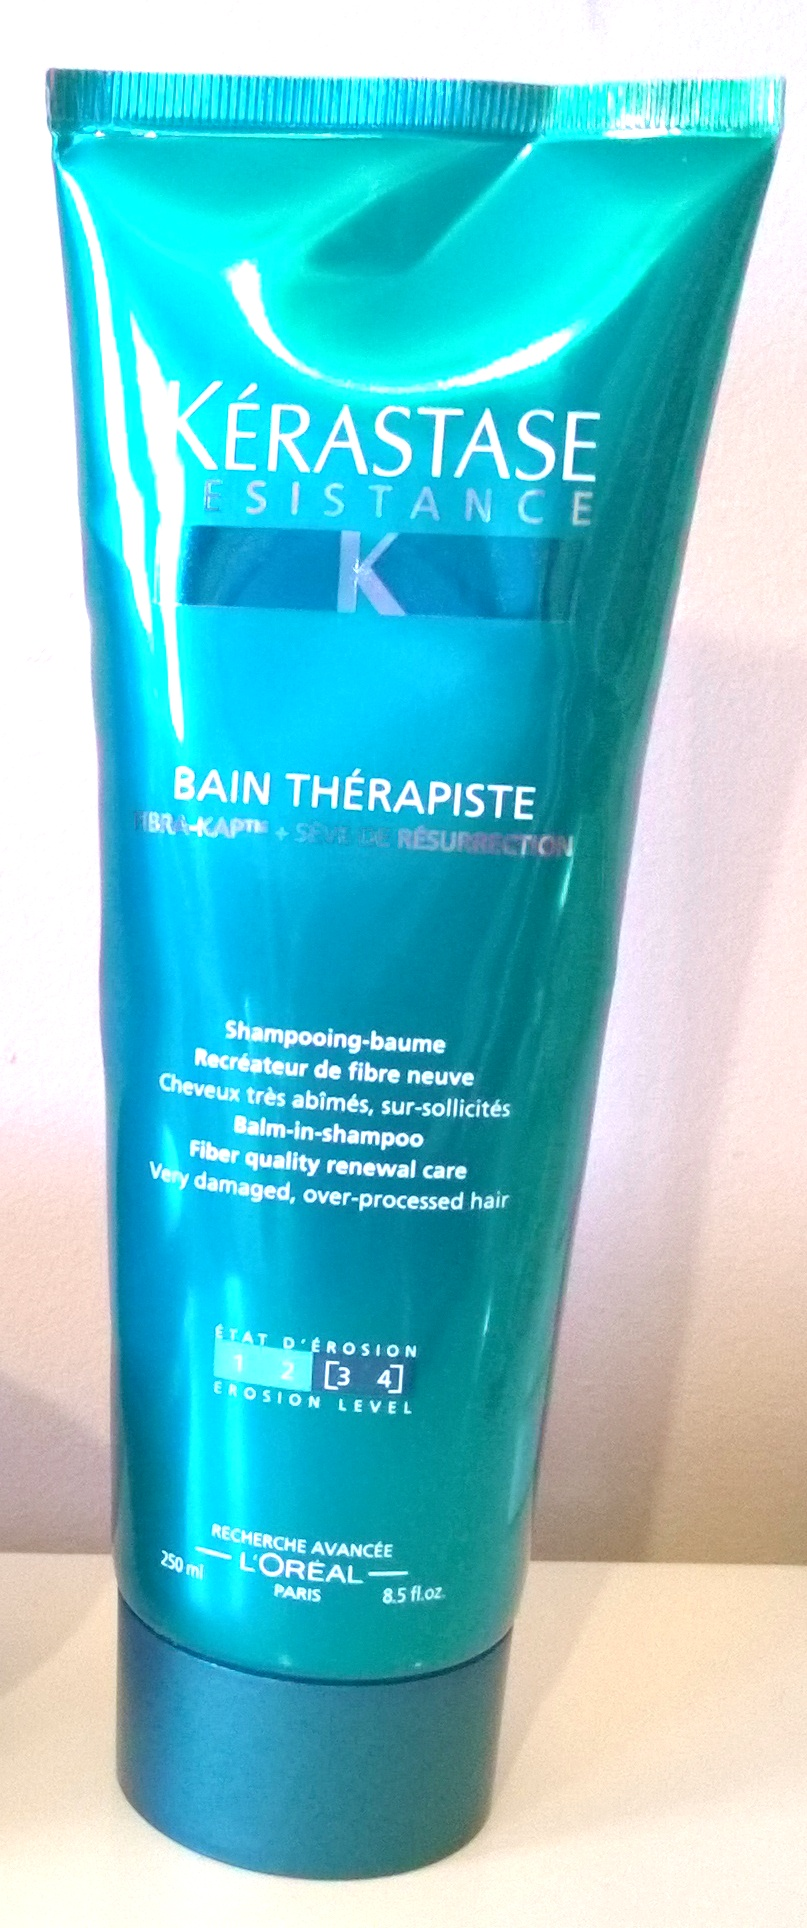 K rastase r sistance th rapiste bain and masque review for Bain miroir 1 kerastase